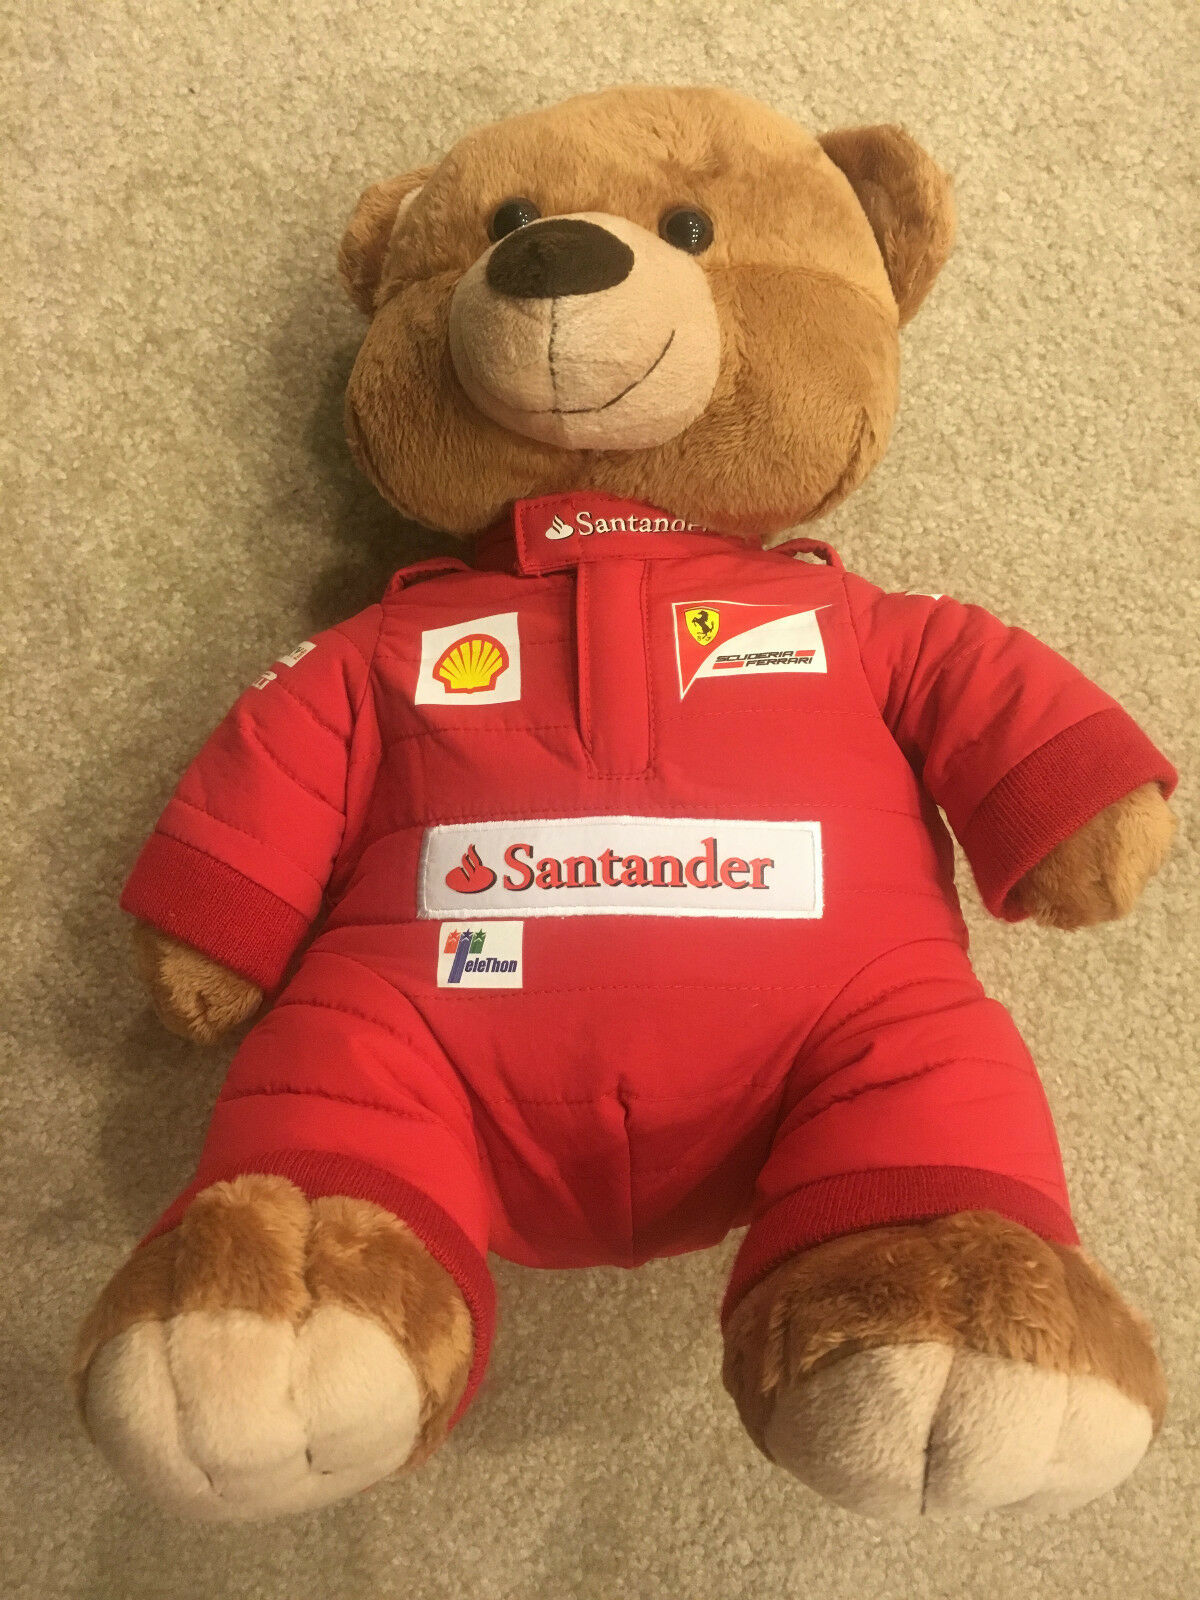 Genuine Ferrari Driver Teddy Bear The Official Product BRAND NEW for Collectors